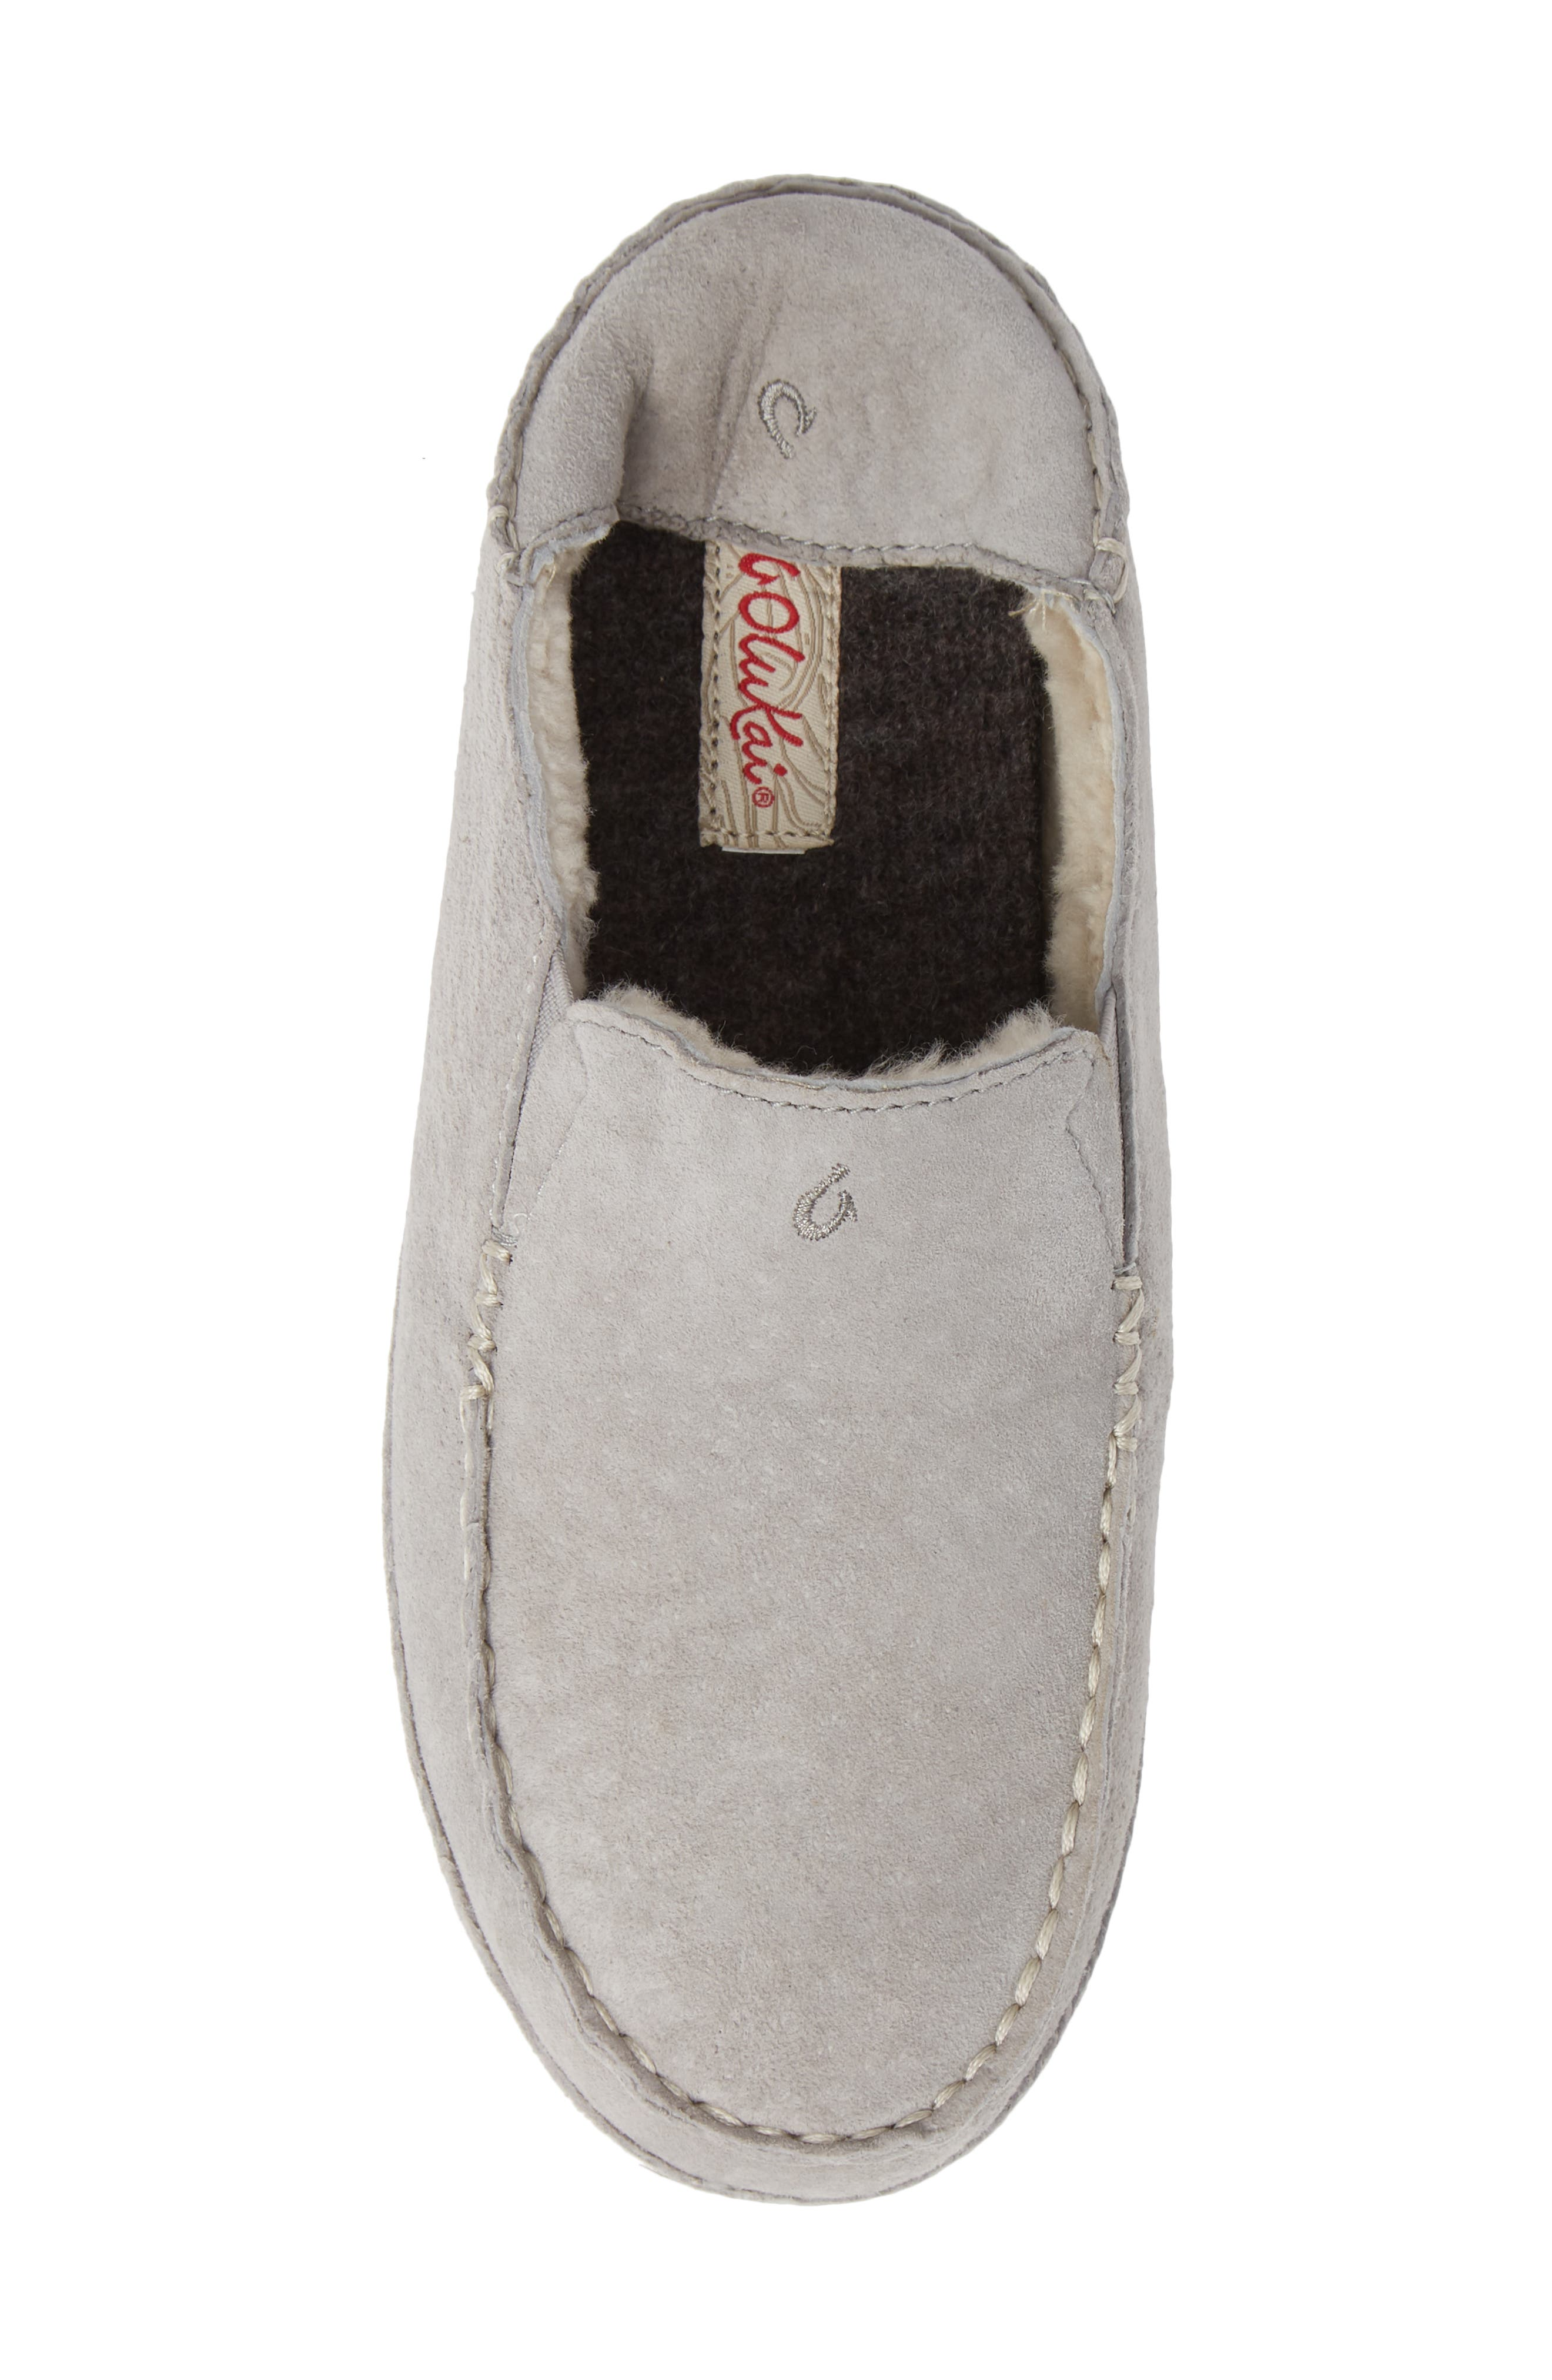 Nohea Nubuck Slipper,                             Alternate thumbnail 6, color,                             PALE GREY/ PALE GREY LEATHER